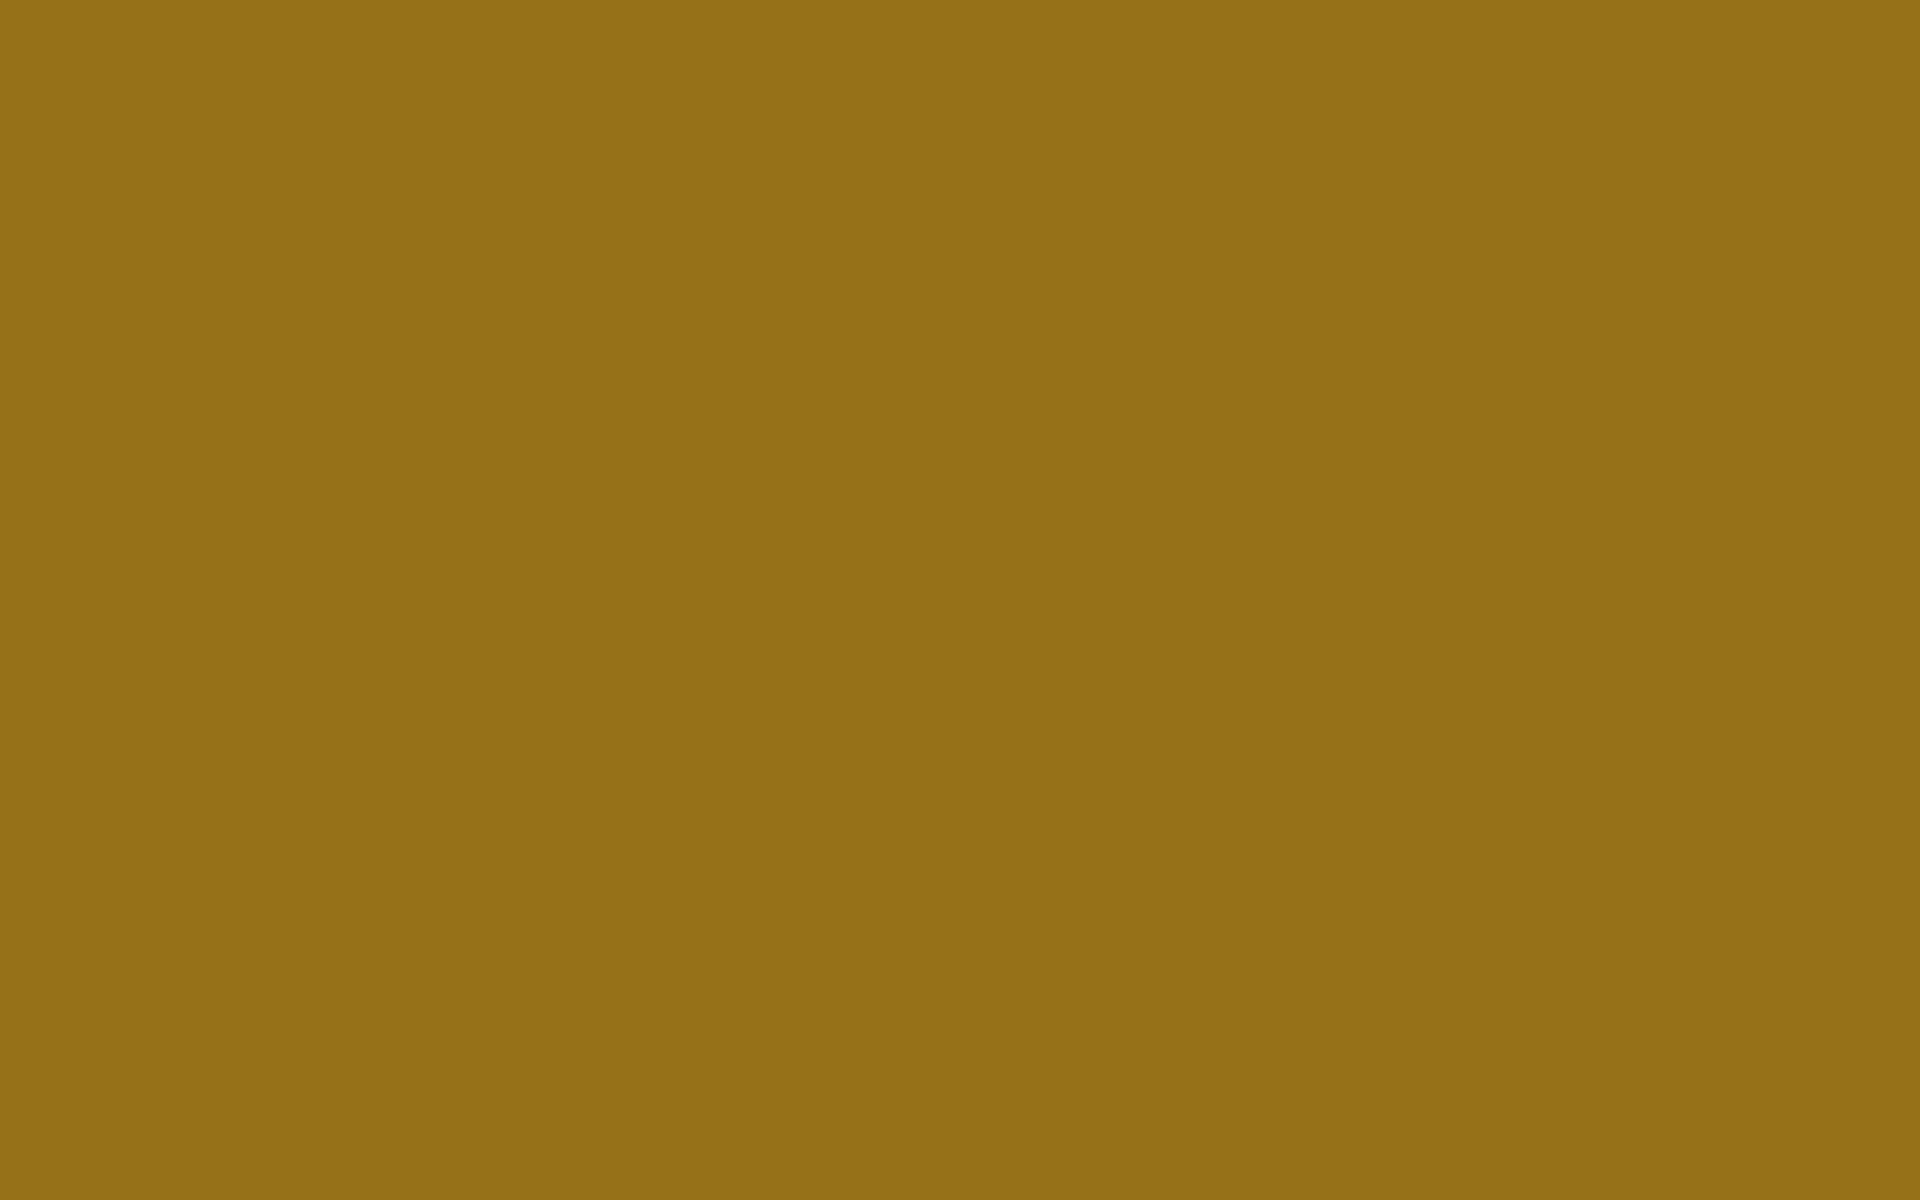 1920x1200 Drab Solid Color Background